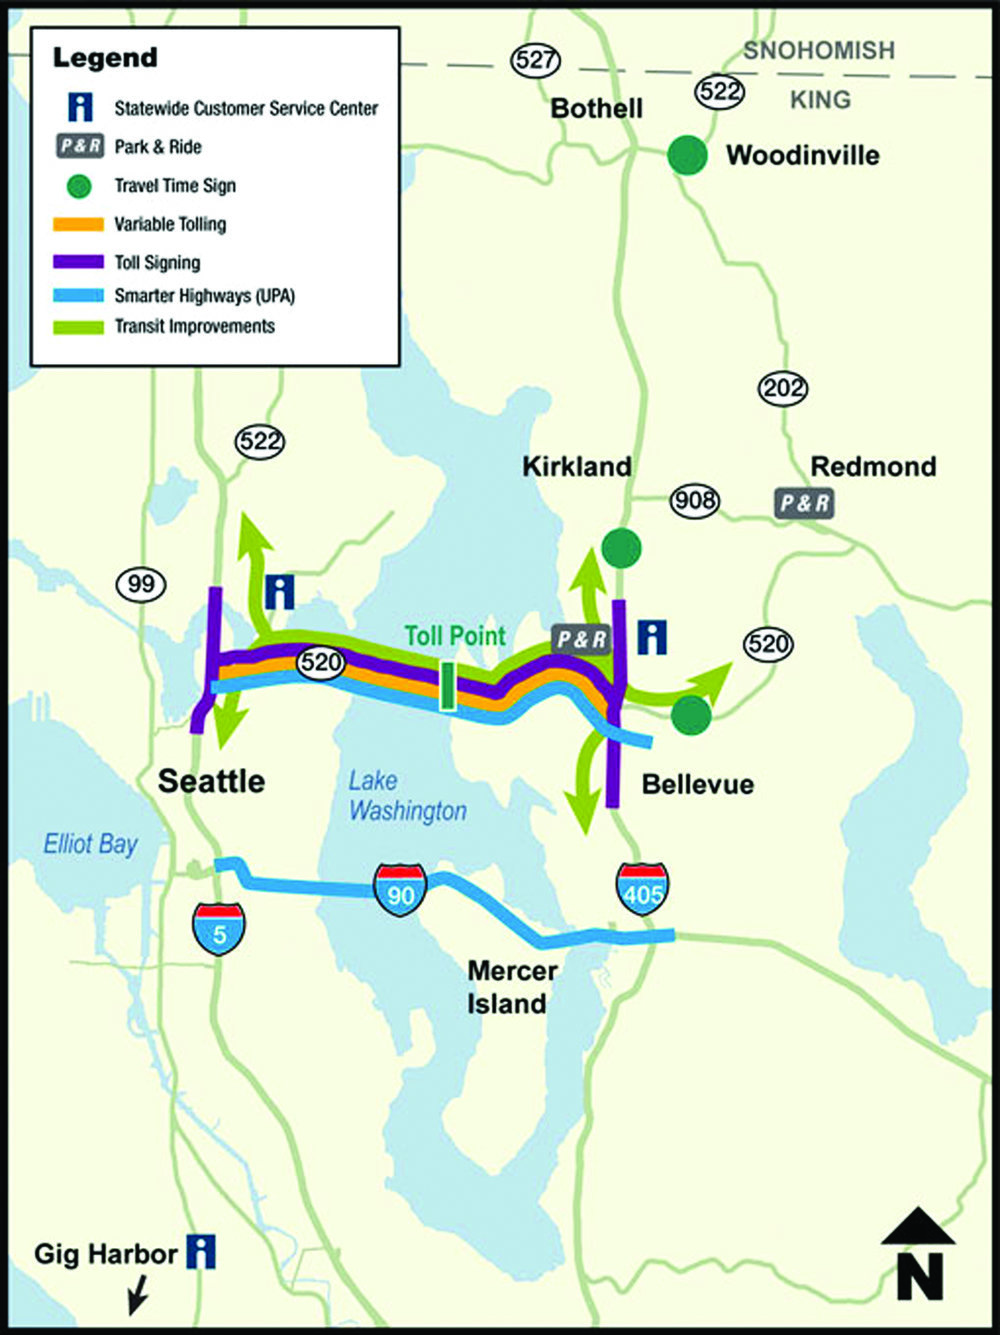 REDUCING CONGESTION: The Lake Washington Congestion Management Program is a series of projects to help address congestion and increase safety on SR 520 and I-90 in the Seattle area. Source: http://www.wsdot.wa.gov/Projects/LkWaMgt/upamap.